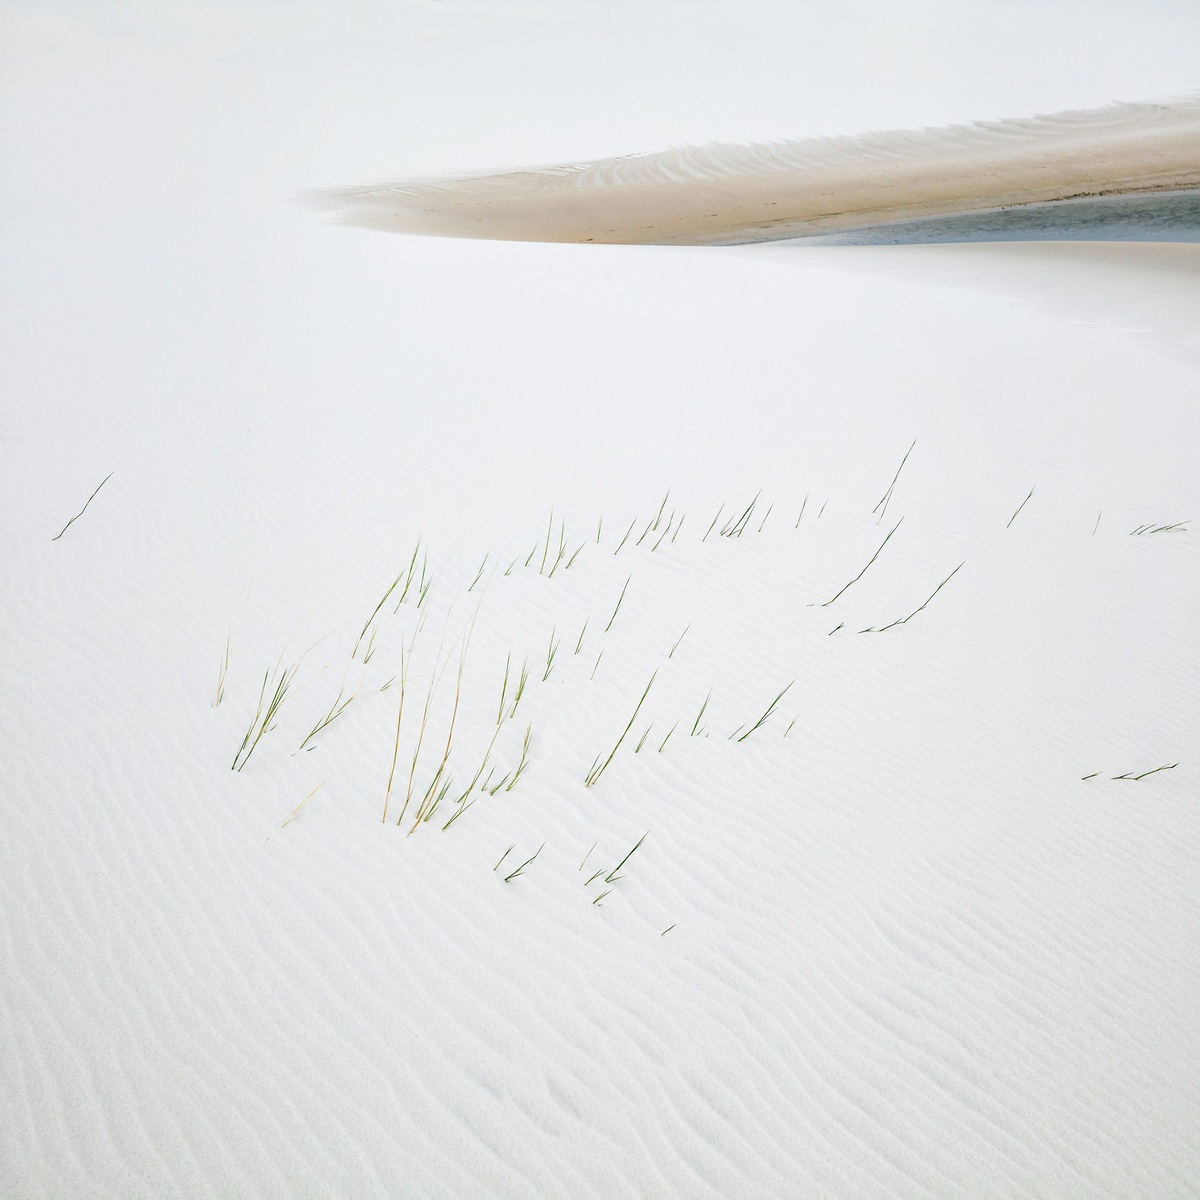 Yi Sun Grass and Lake Study 1, Lençóis Maranhenses National Park, Brazil 2018